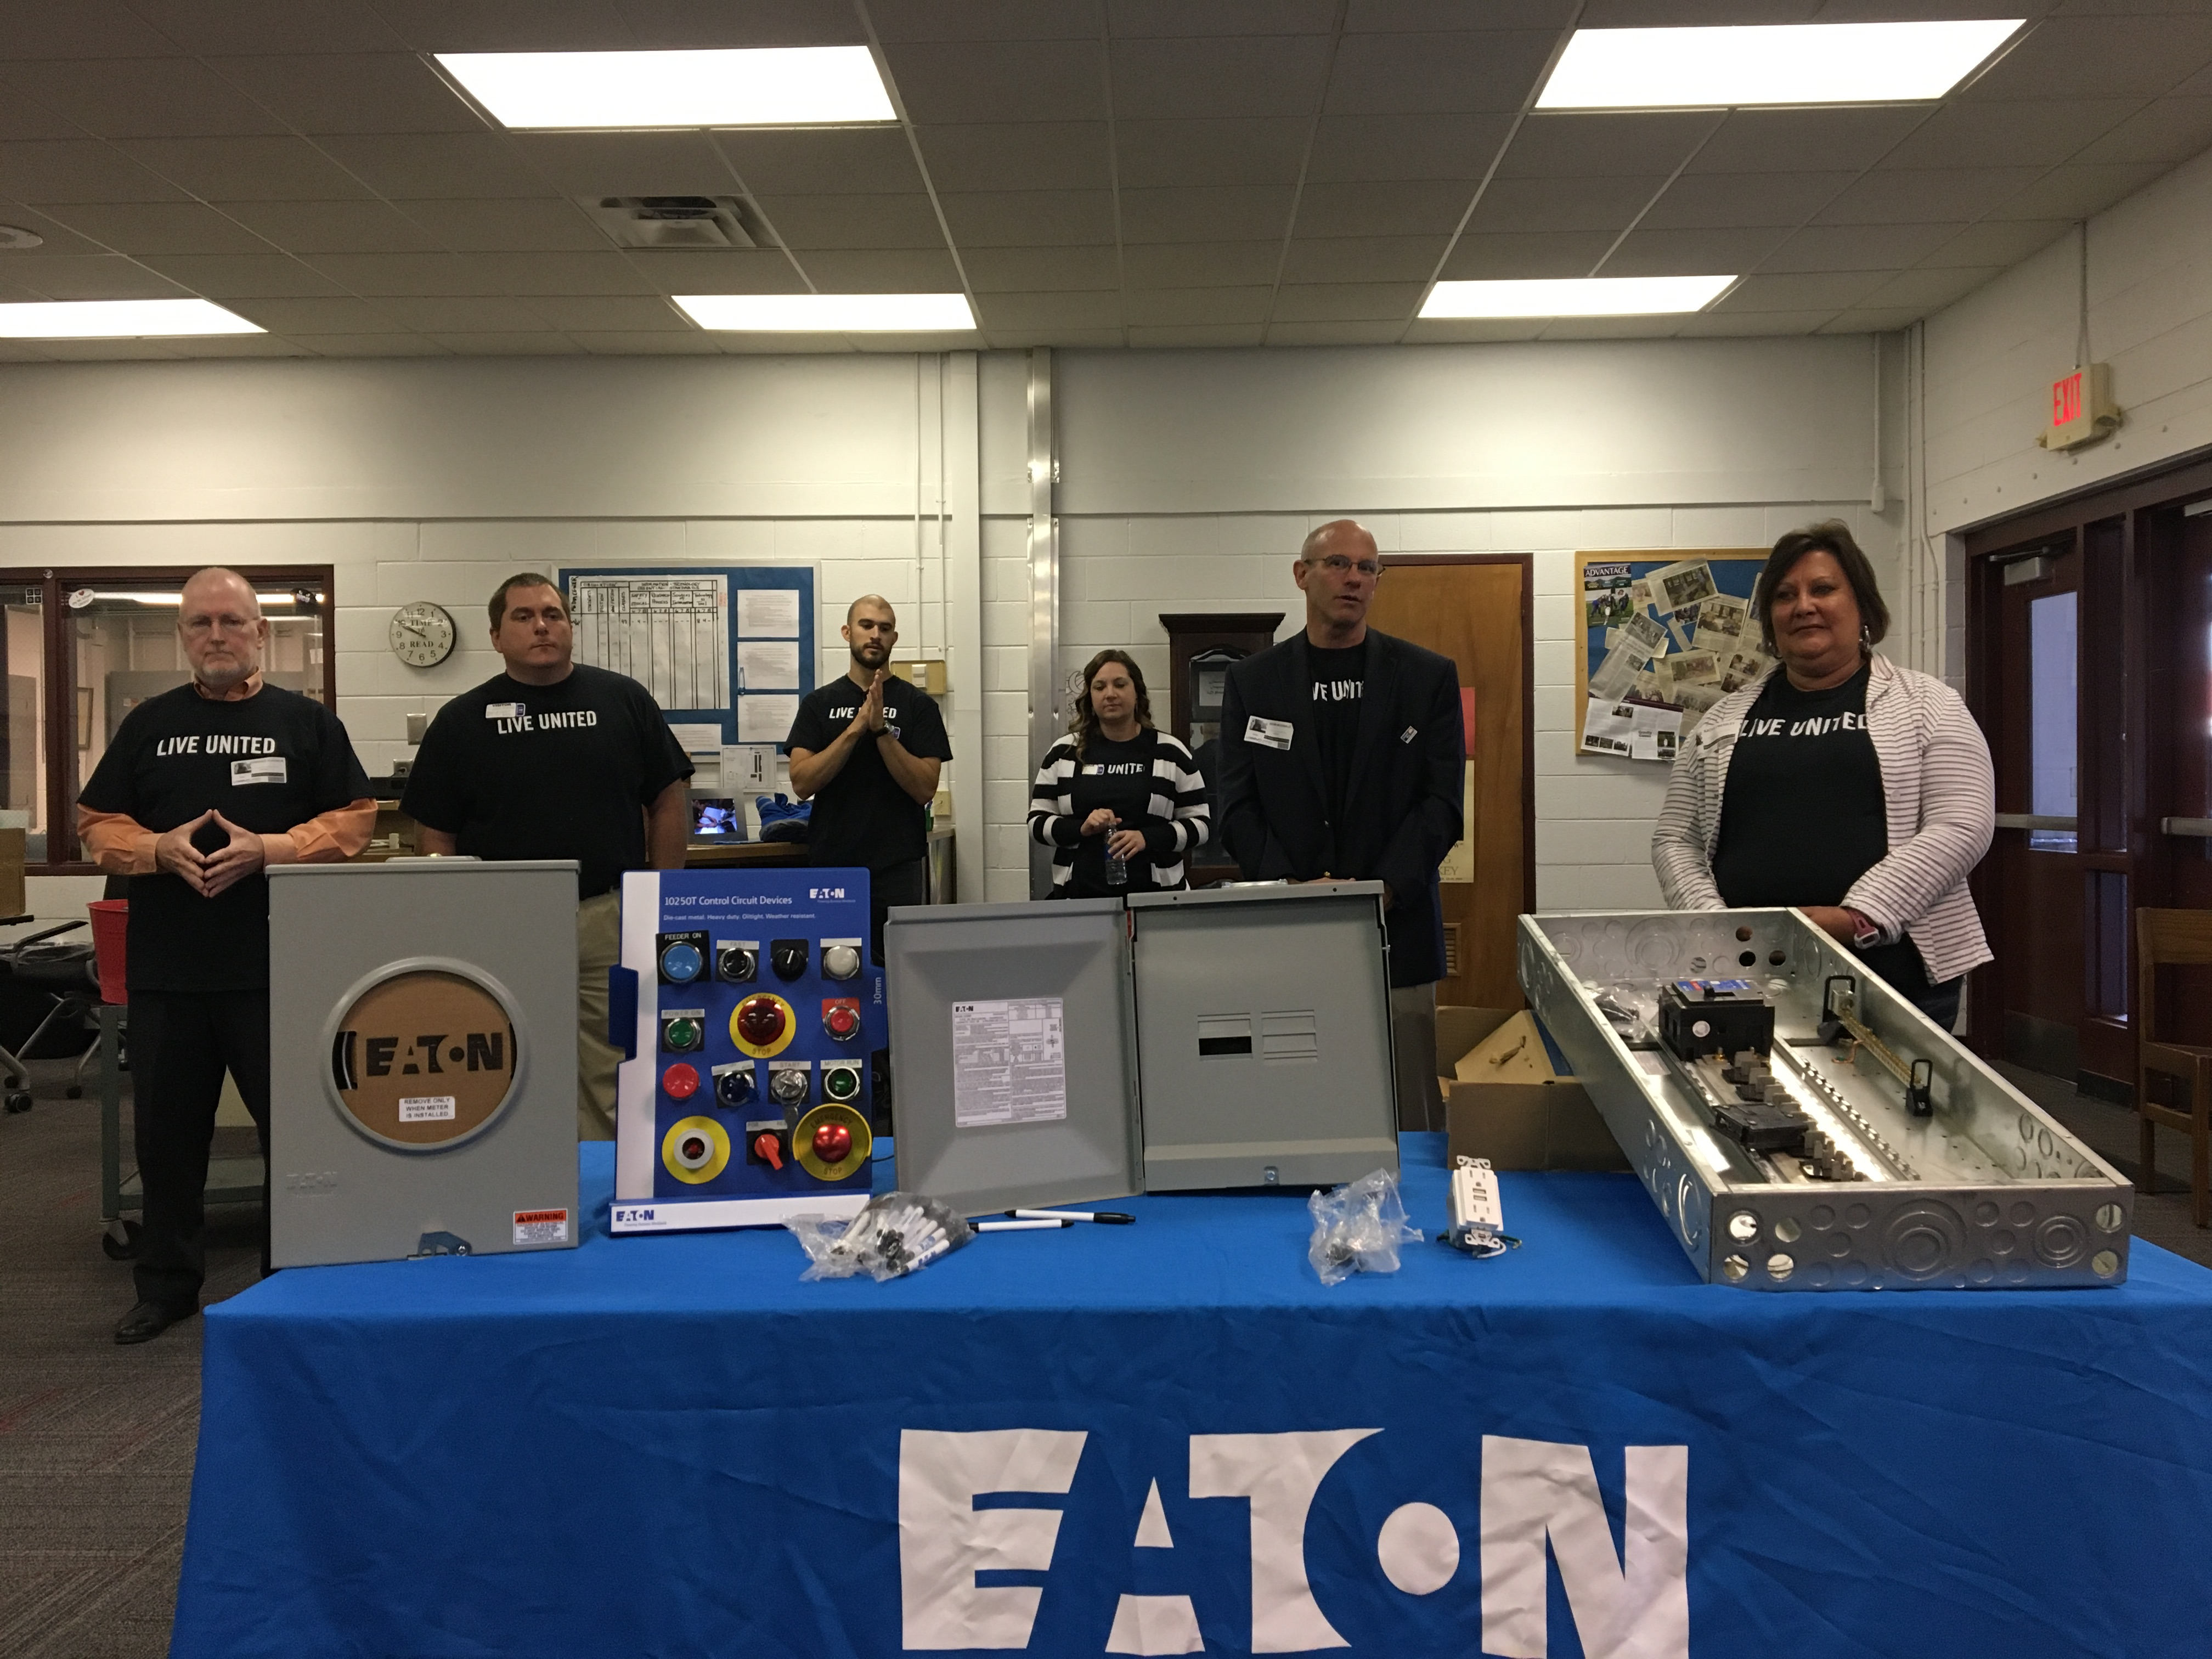 Eaton shared some behind the scenes information with Owen Middle students